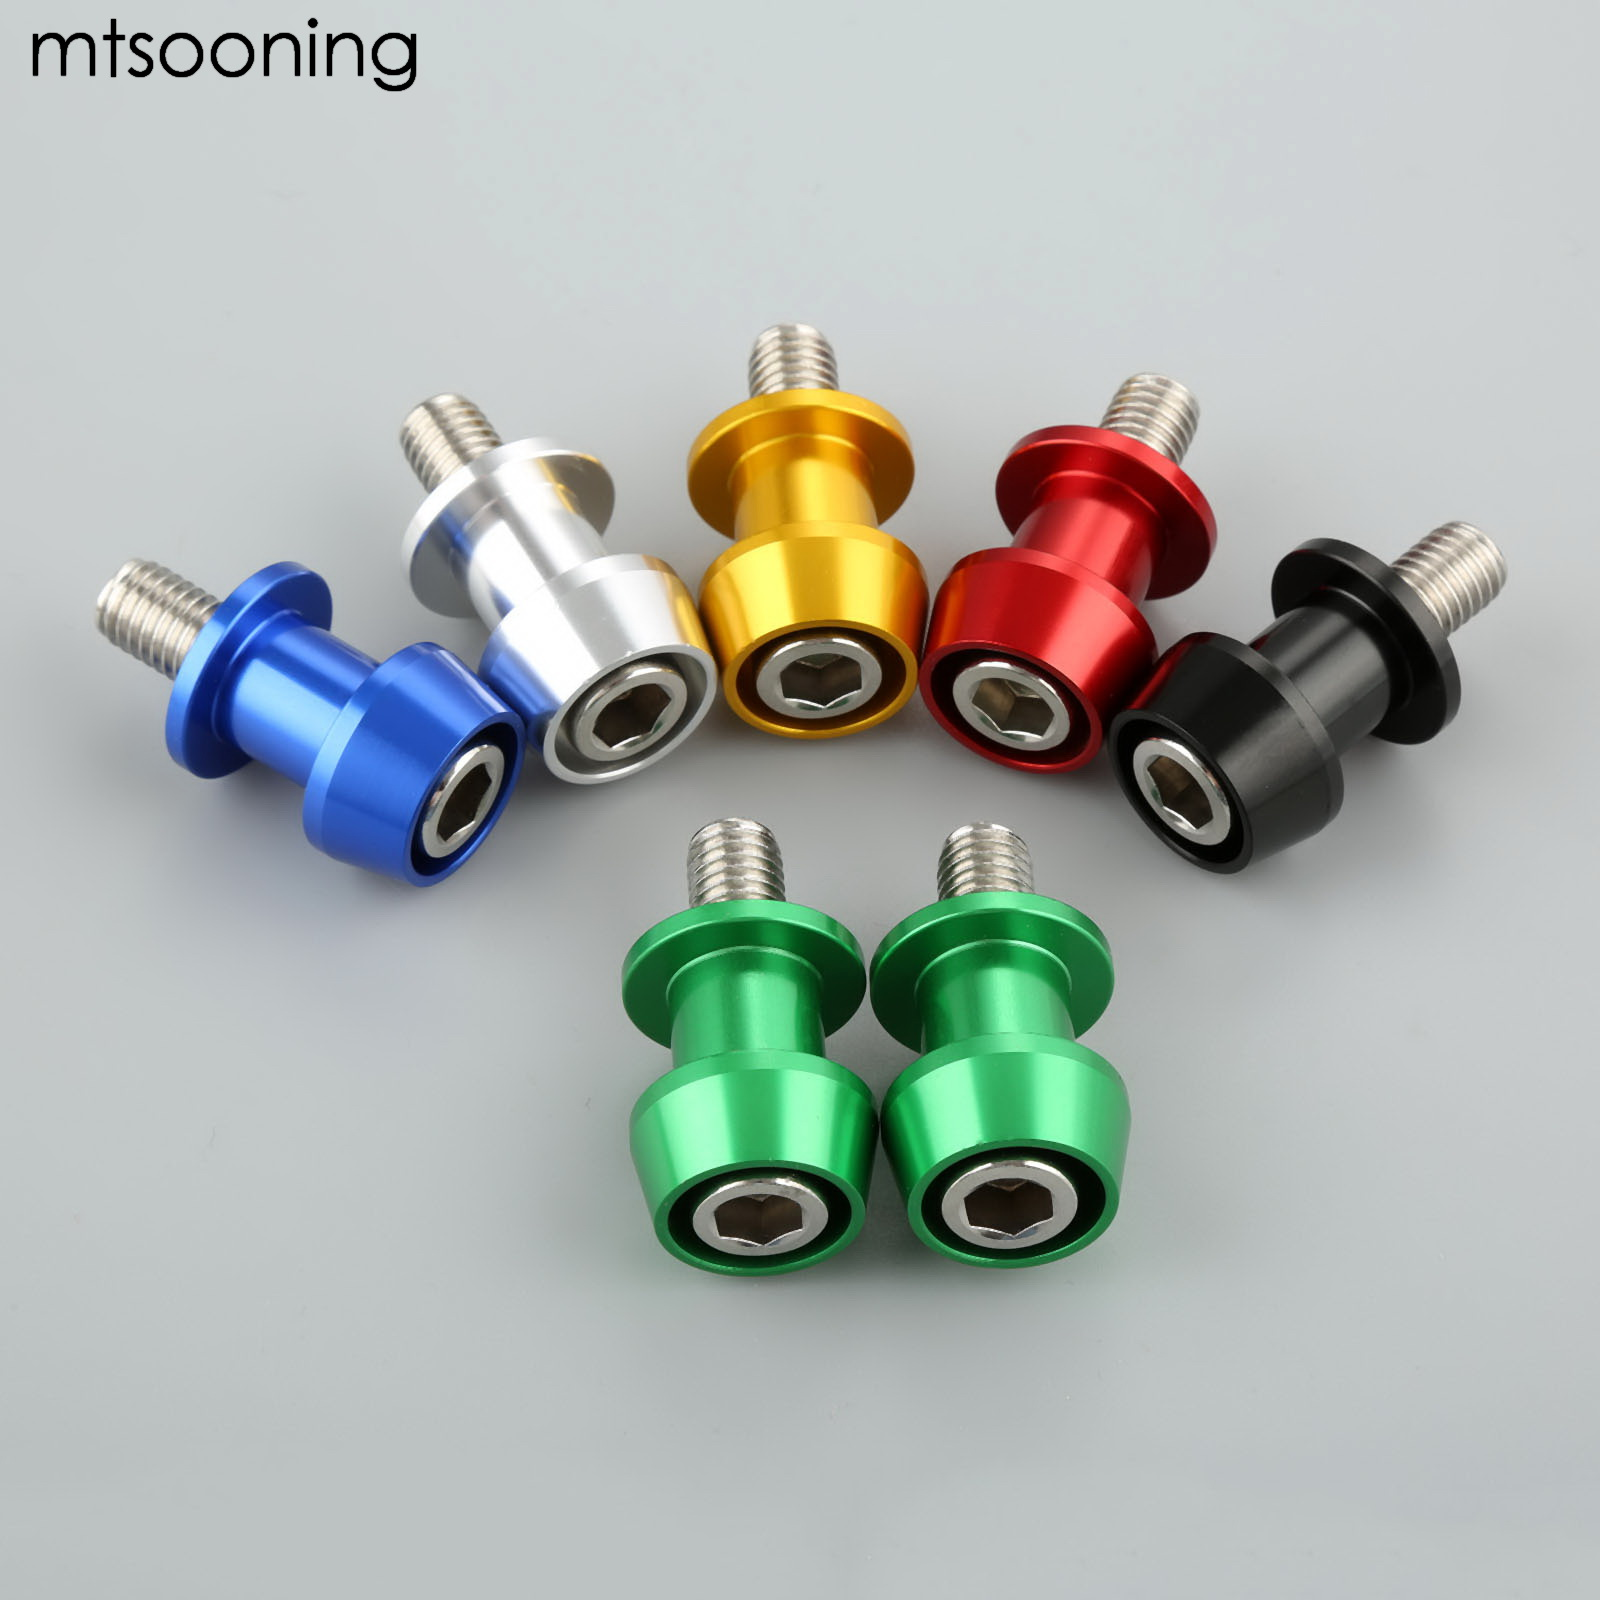 mtsooning Motorcycle CNC Swingarm Swing Arm Spools Sliders 1 Pair 10mm for KTM Honda Suzuki Ducati BMW KAWASAKI ZX6R 09-14 Z8W 2pcs universal motorcycle stand screws cnc swingarm swing sliders spools m6 m8 m10 for yamaha r3 honda crf 450 suzuki gn250